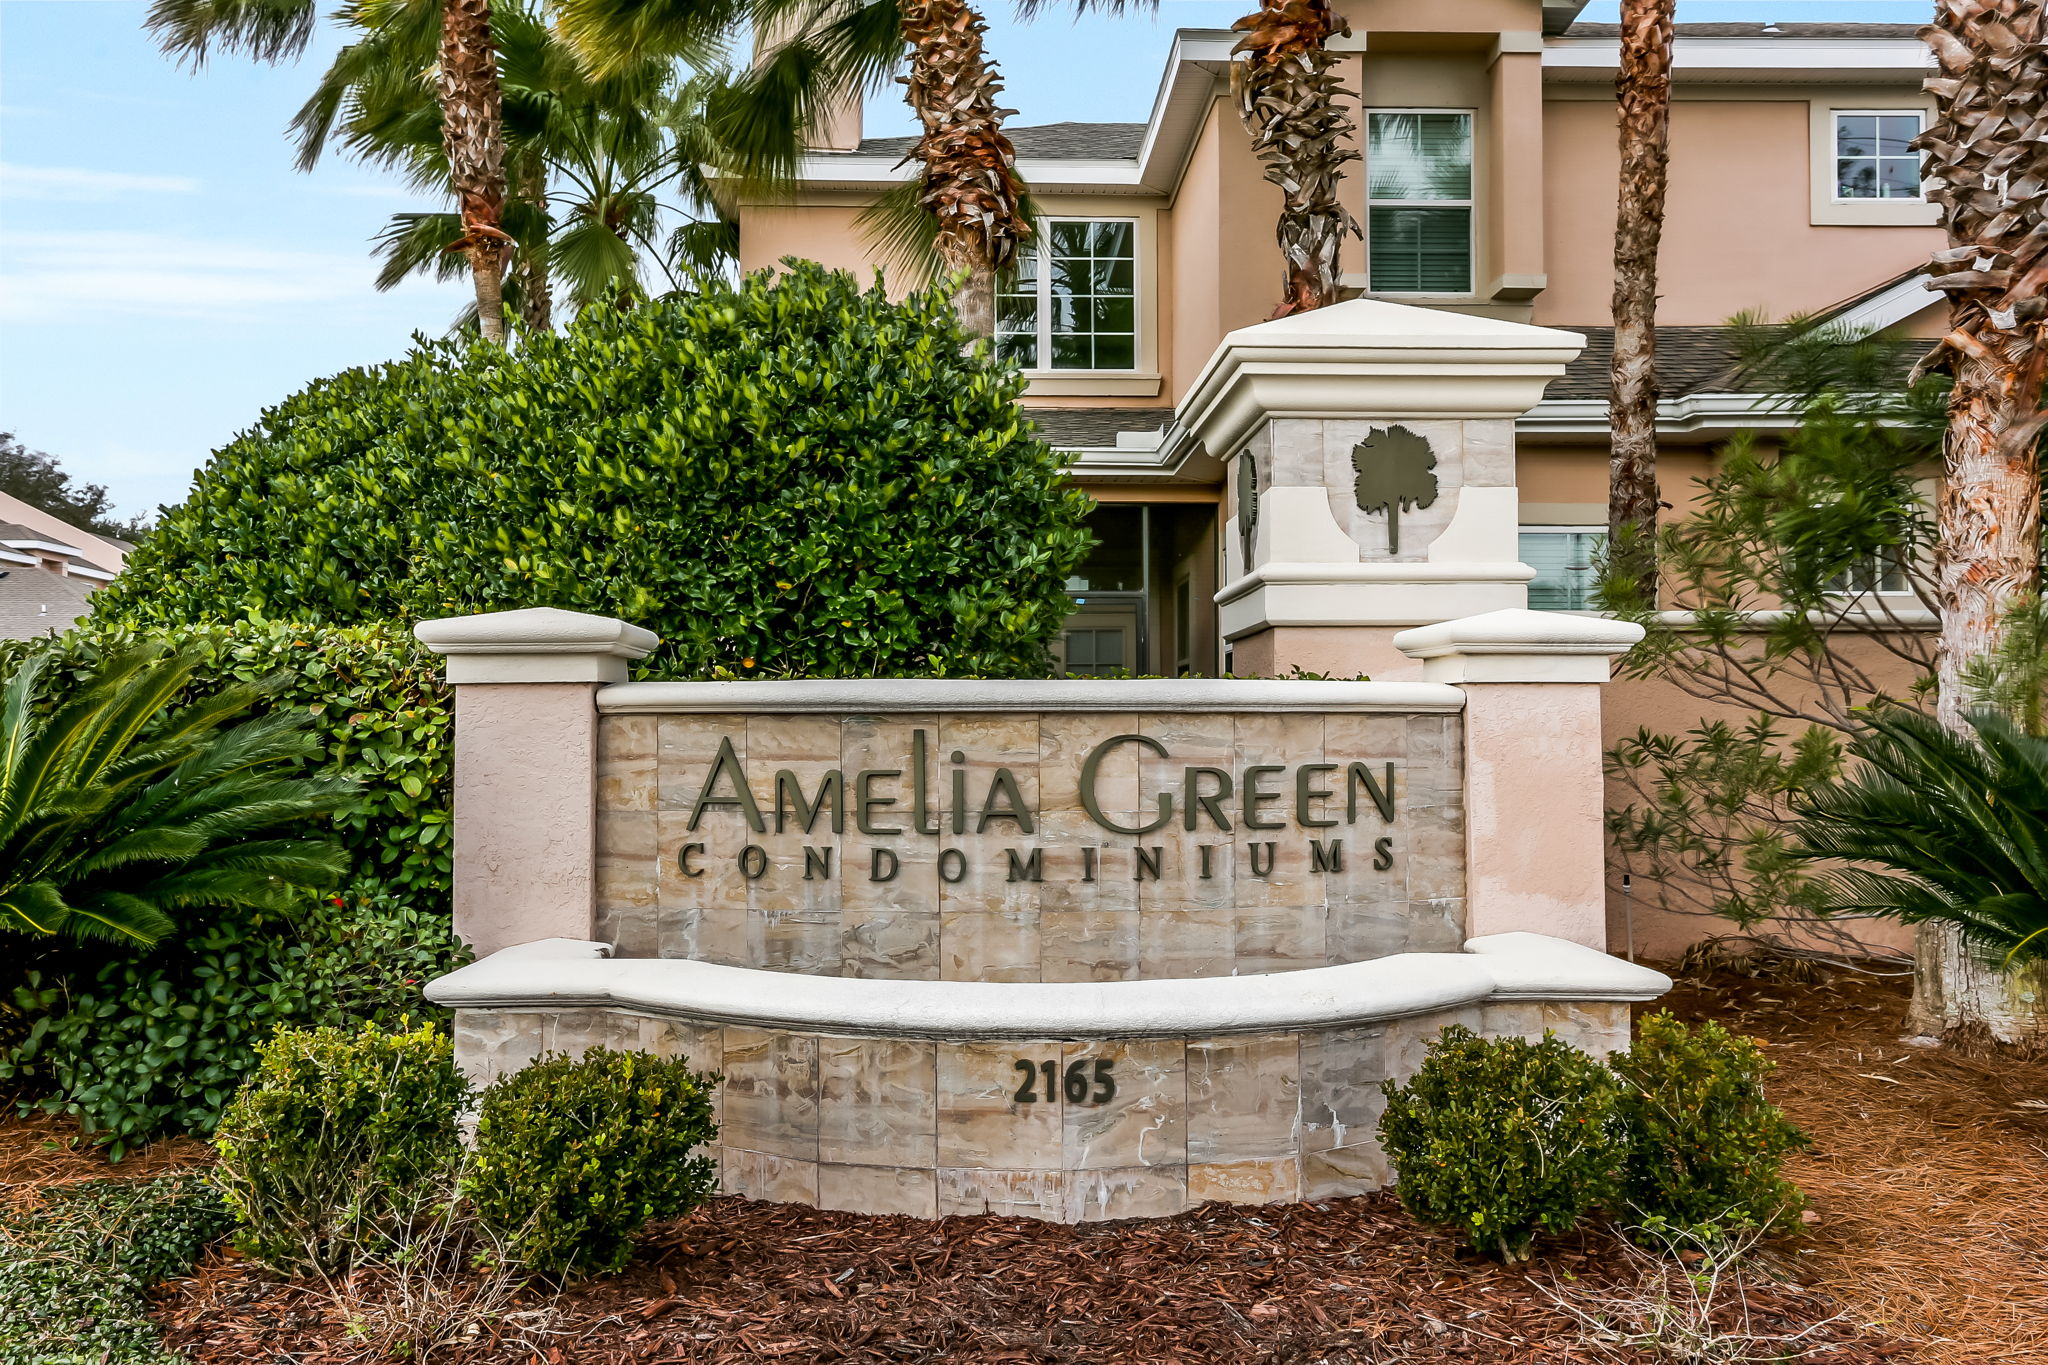 Amelia Green. a private, quiet community with only 41 units